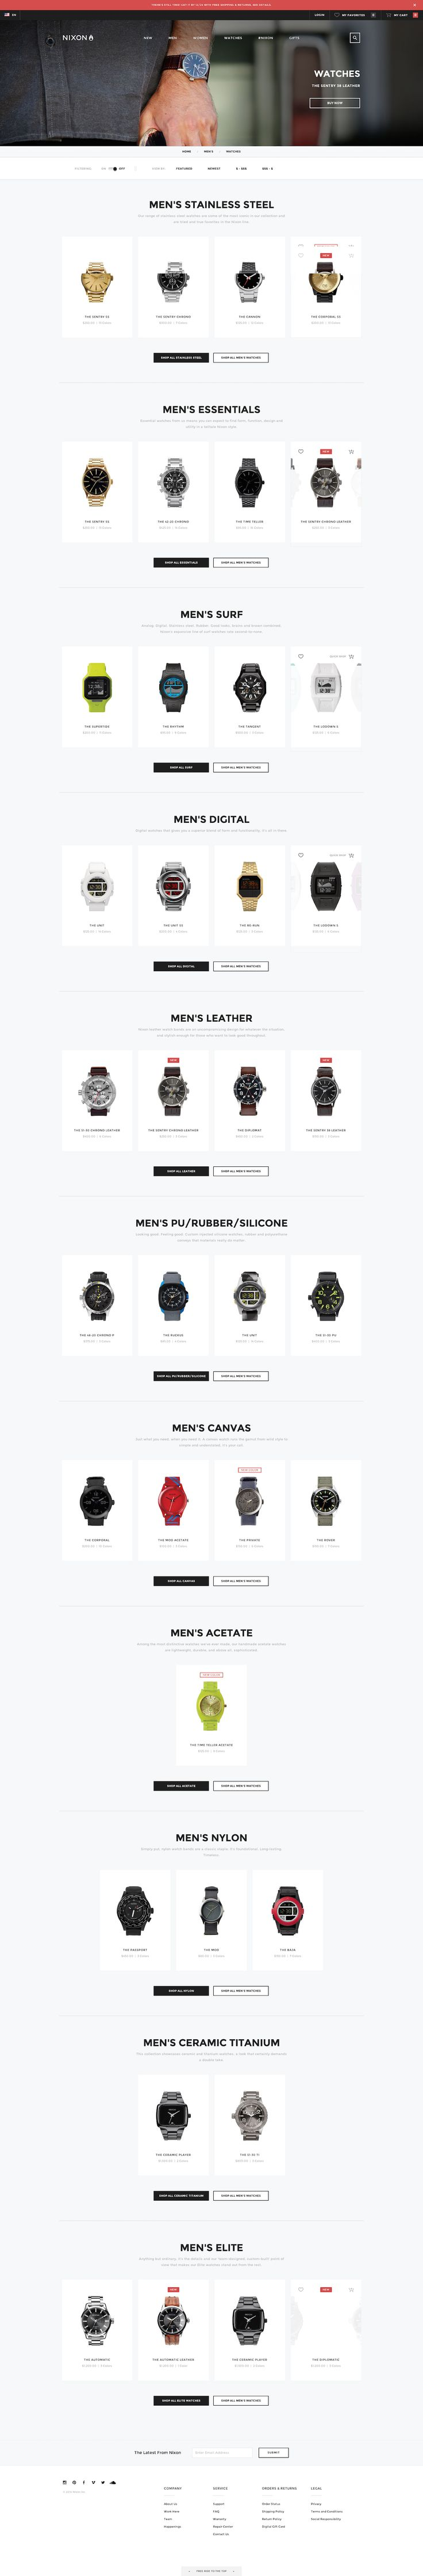 product archive, with products organized by category via Nixon watches